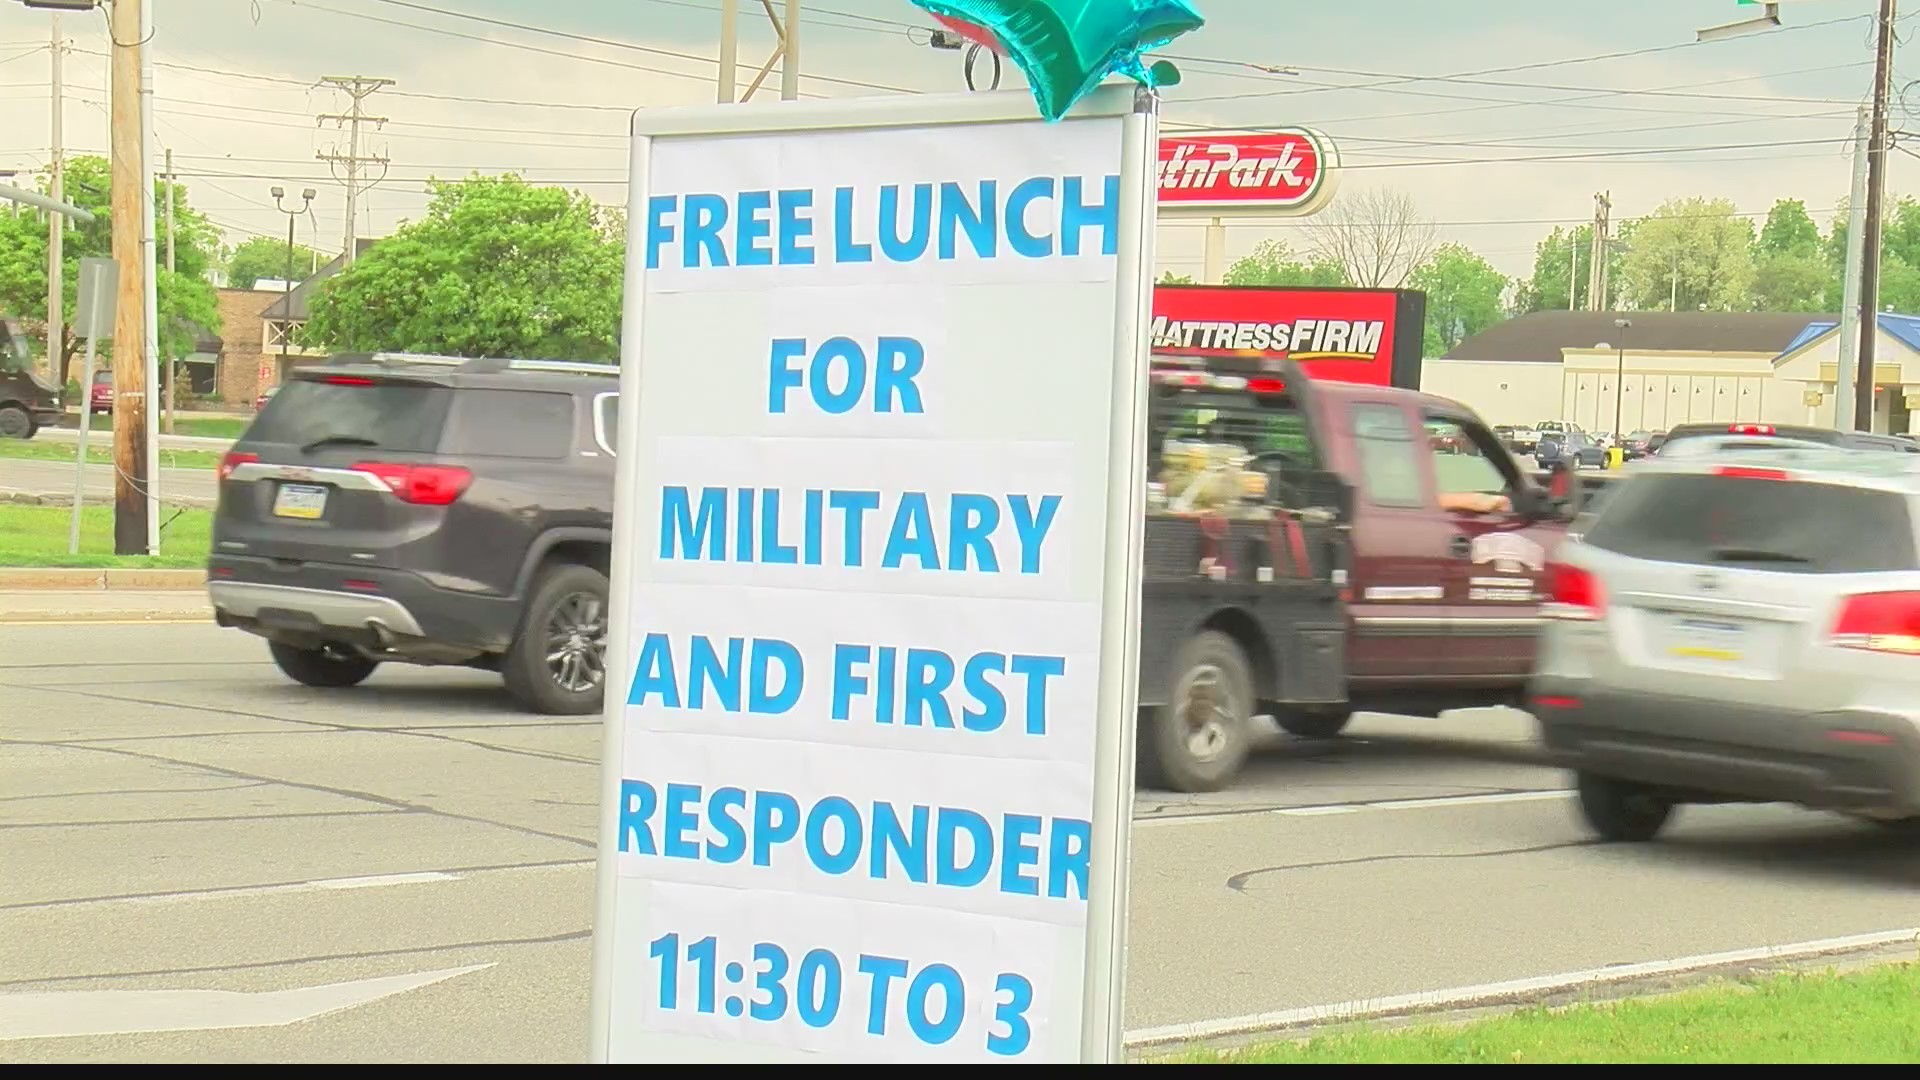 Free_lunch_given_to_first_responders__mi_0_20190523221459